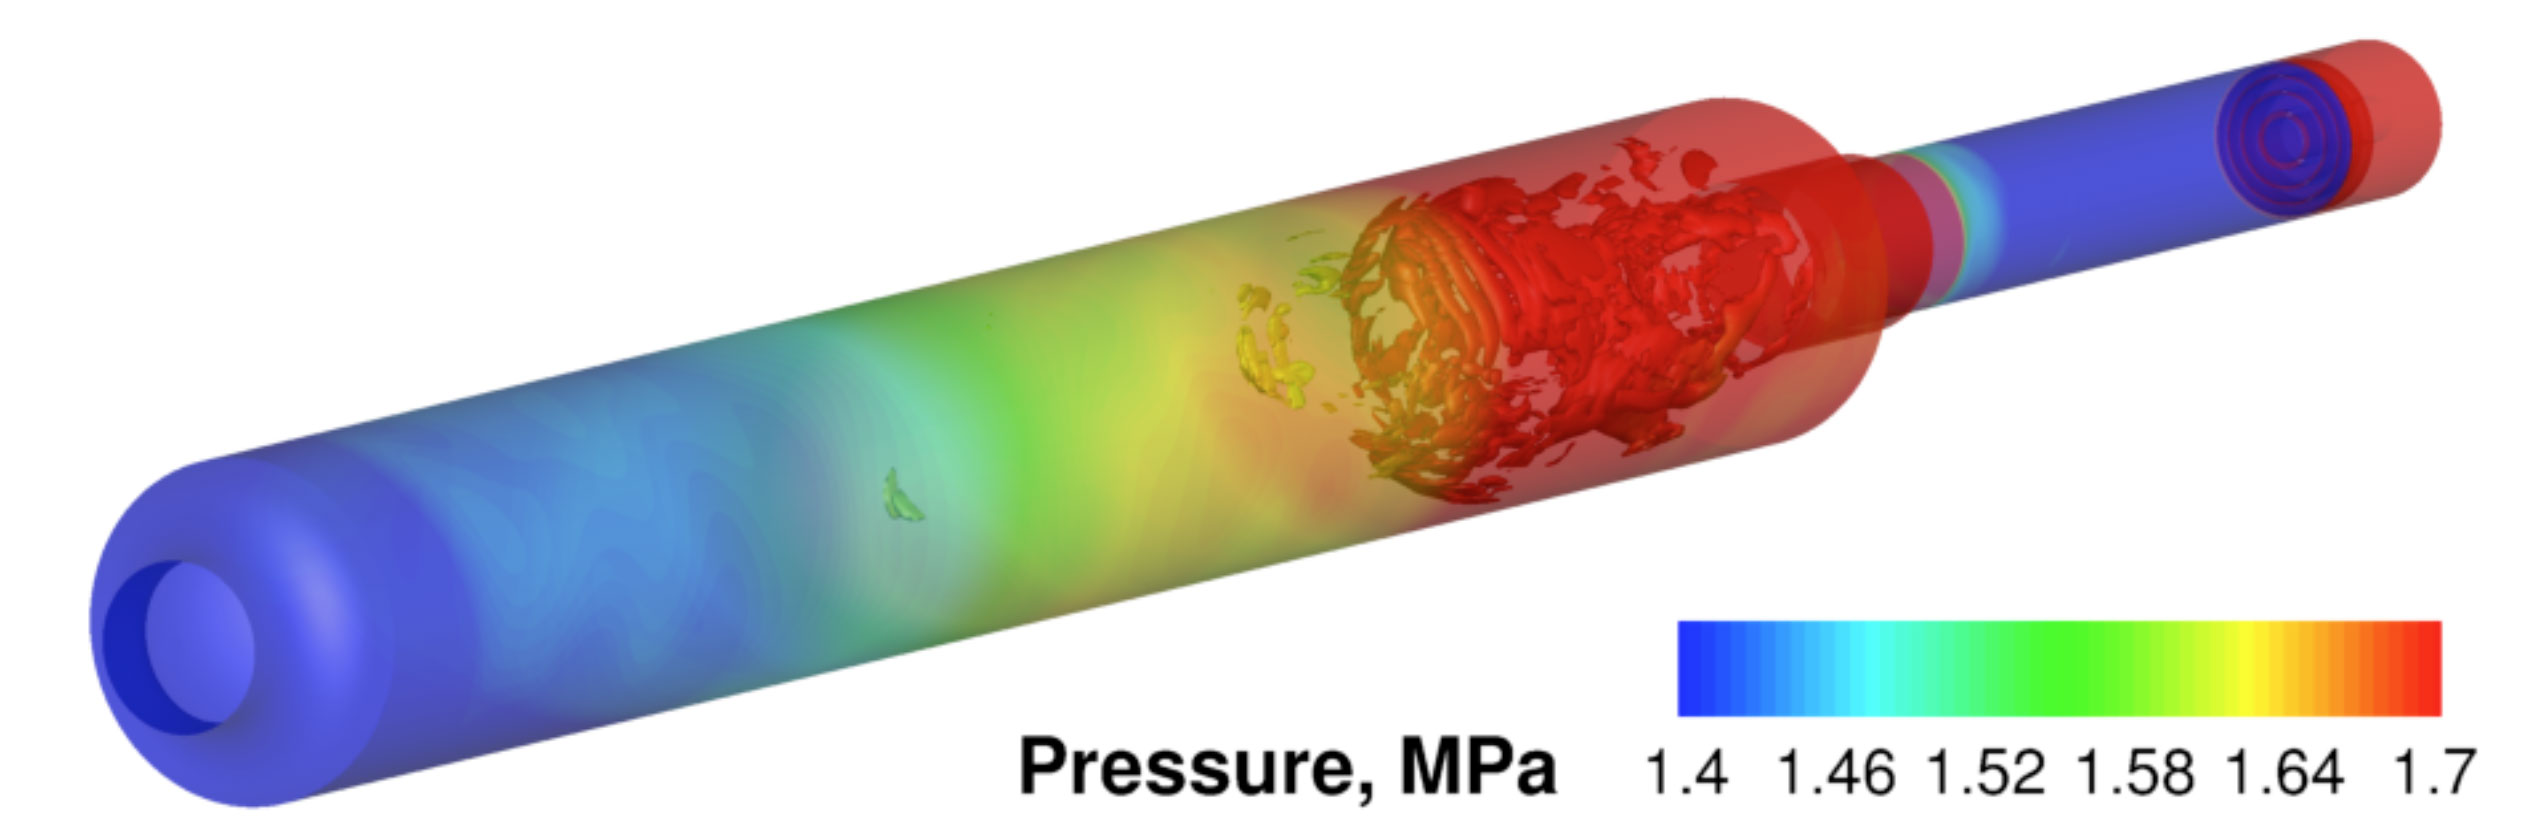 A simulation of combustion and pressure inside a rocket engine. The Air Force is funding research to predict whether new designs will be at risk of exploding. Image credit: Cheng Huang, Purdue University